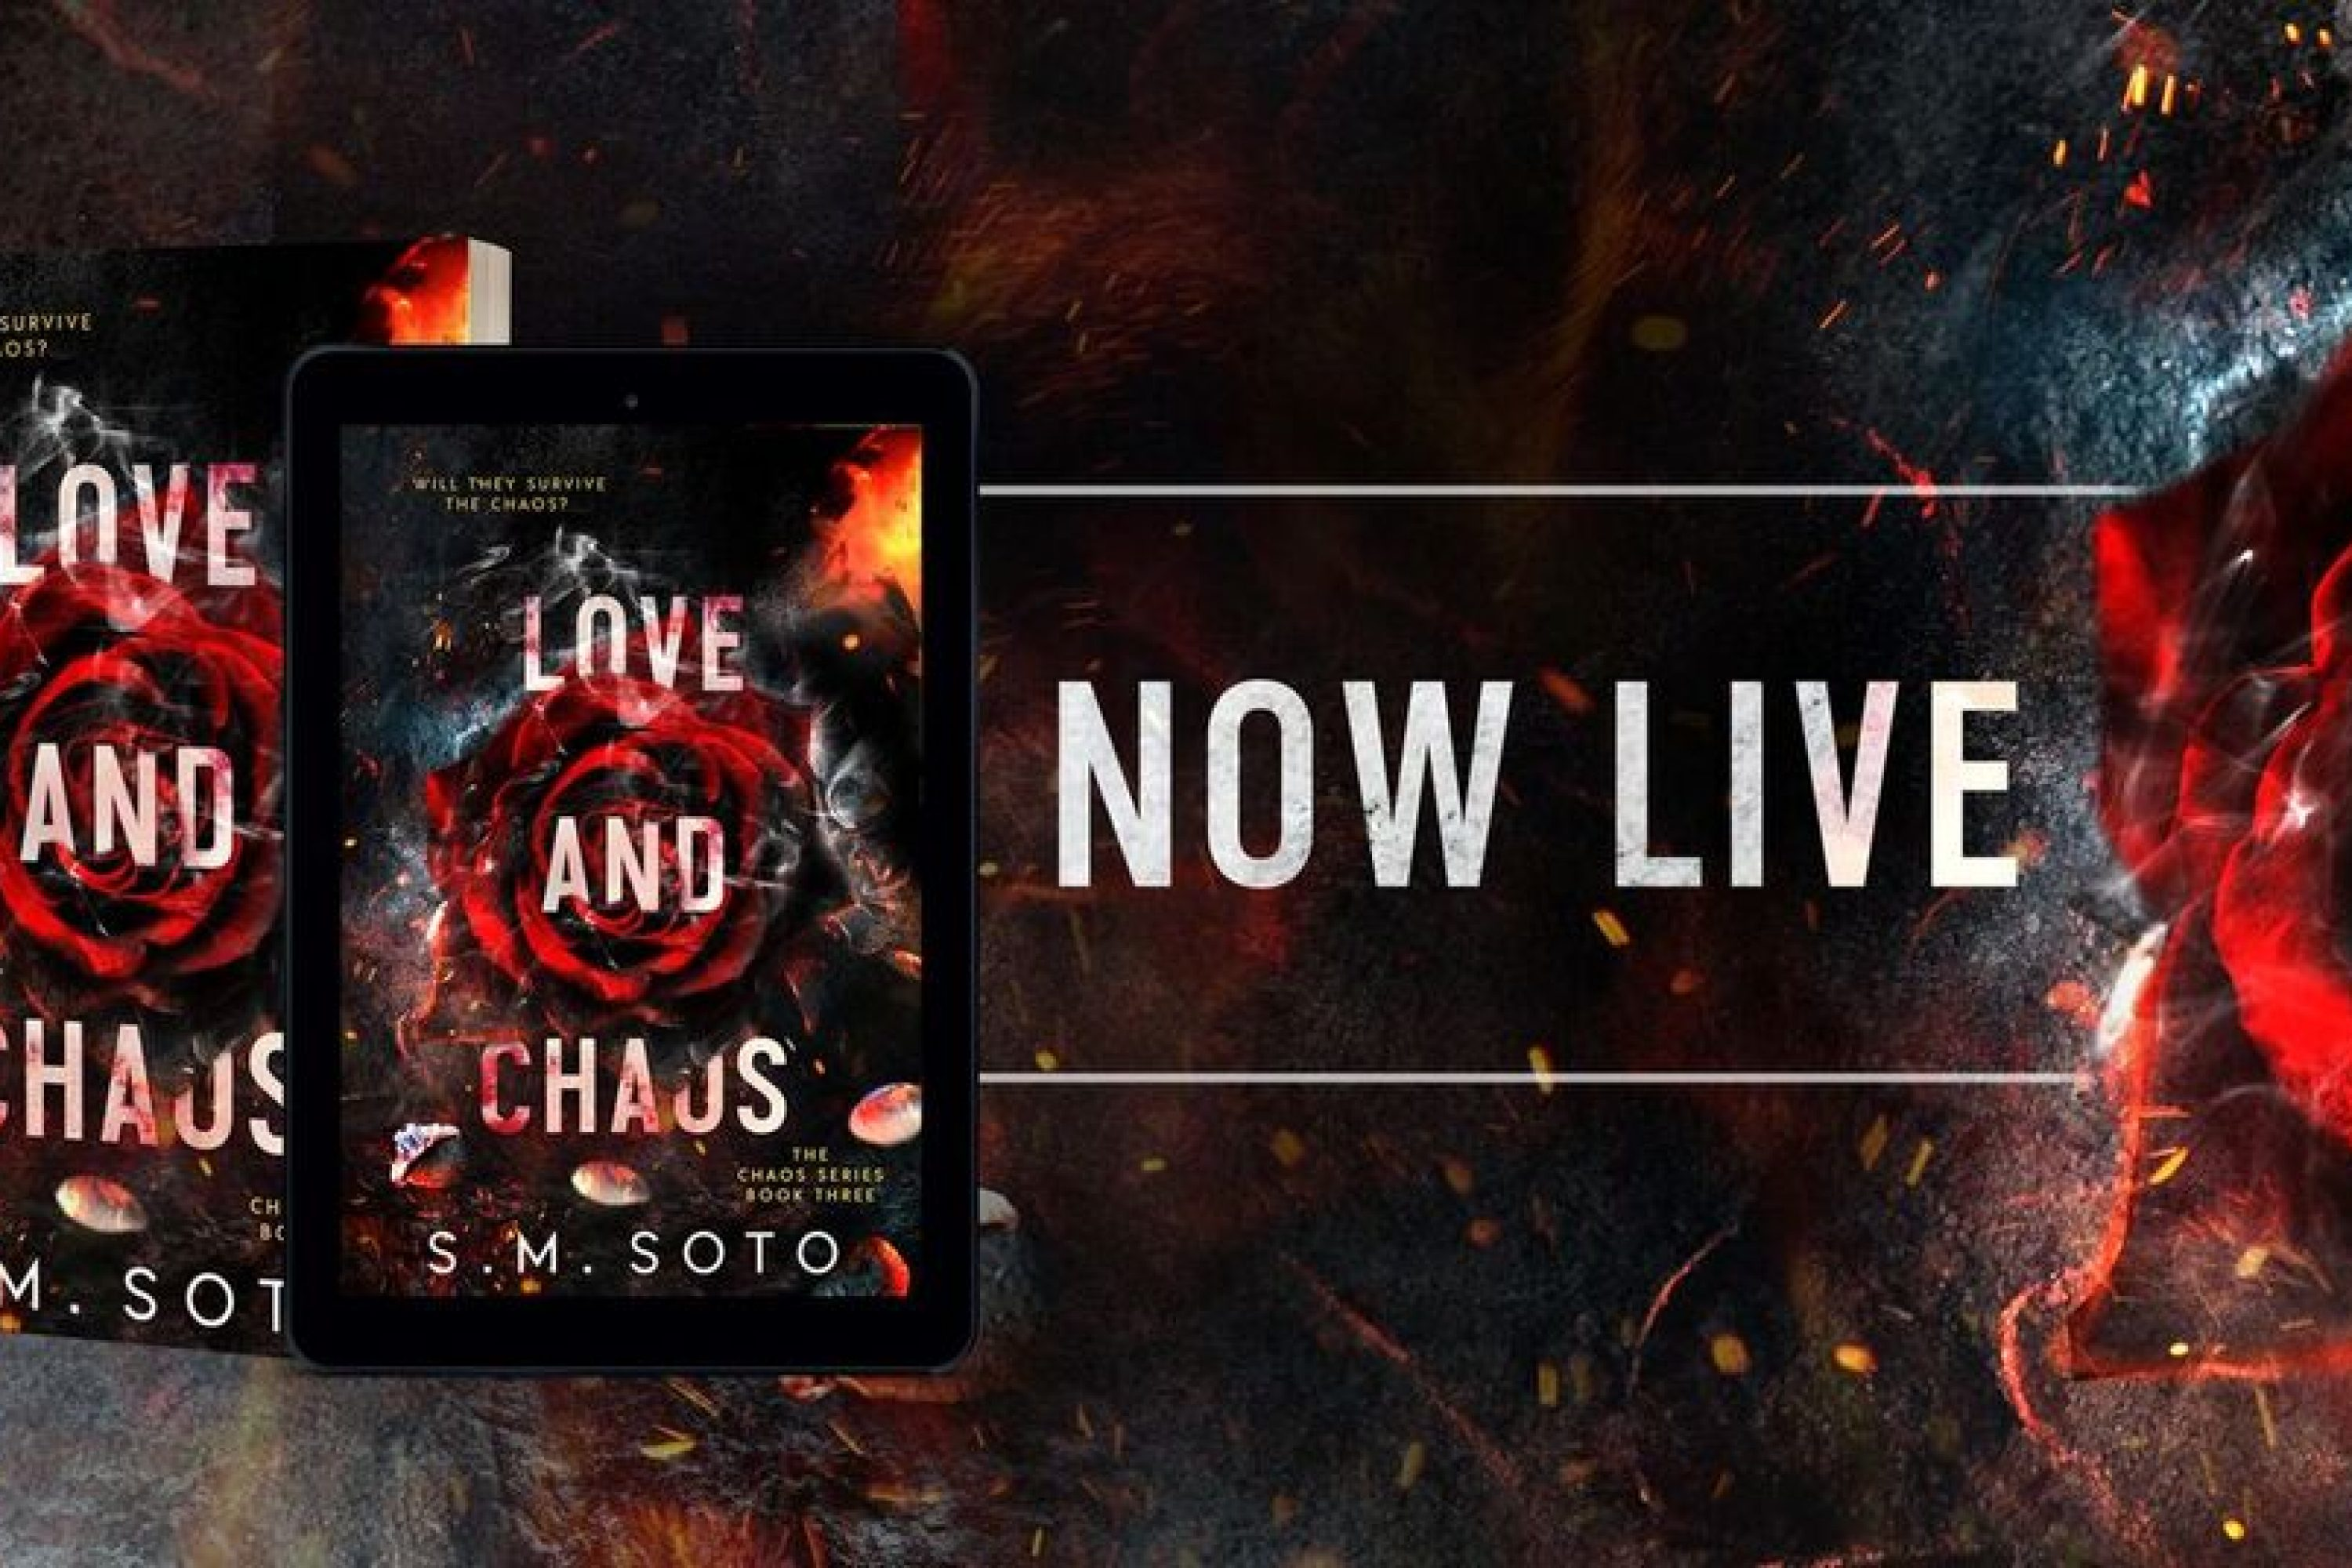 Release Blitz: Love and Chaos by S.M. Soto